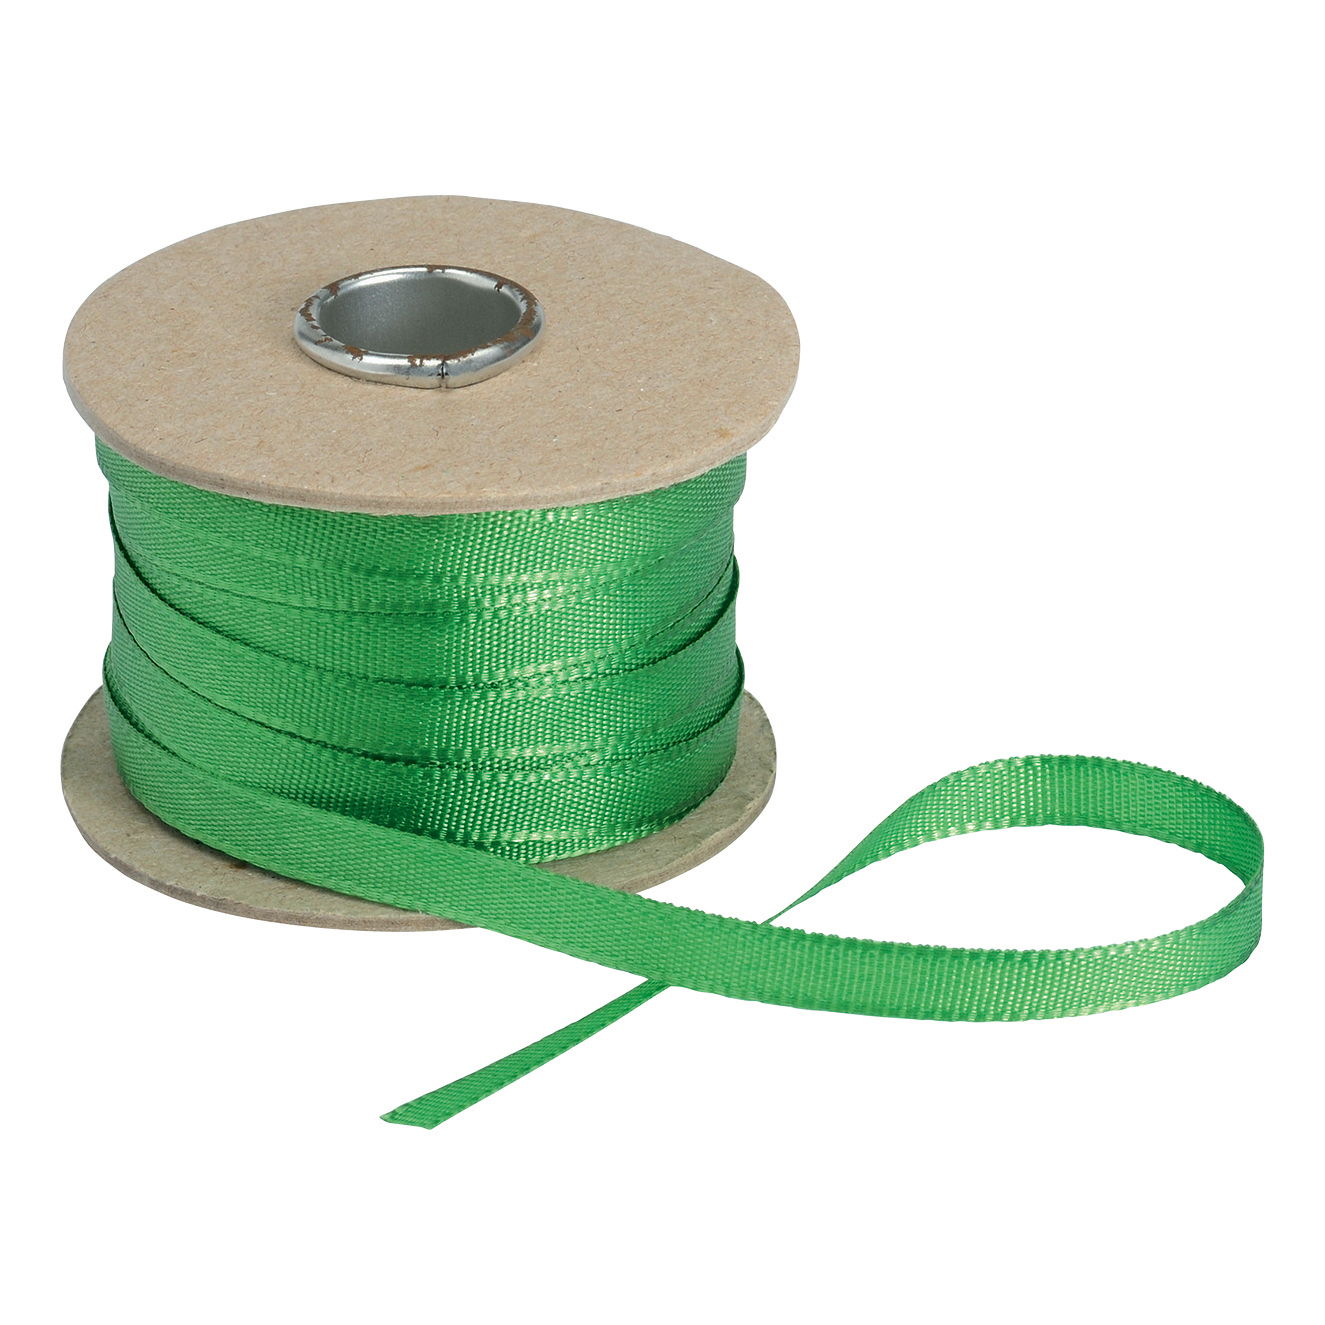 Ornamental trimmings 5 Star Office Legal Tape Reel 6mmx50m Silky Green